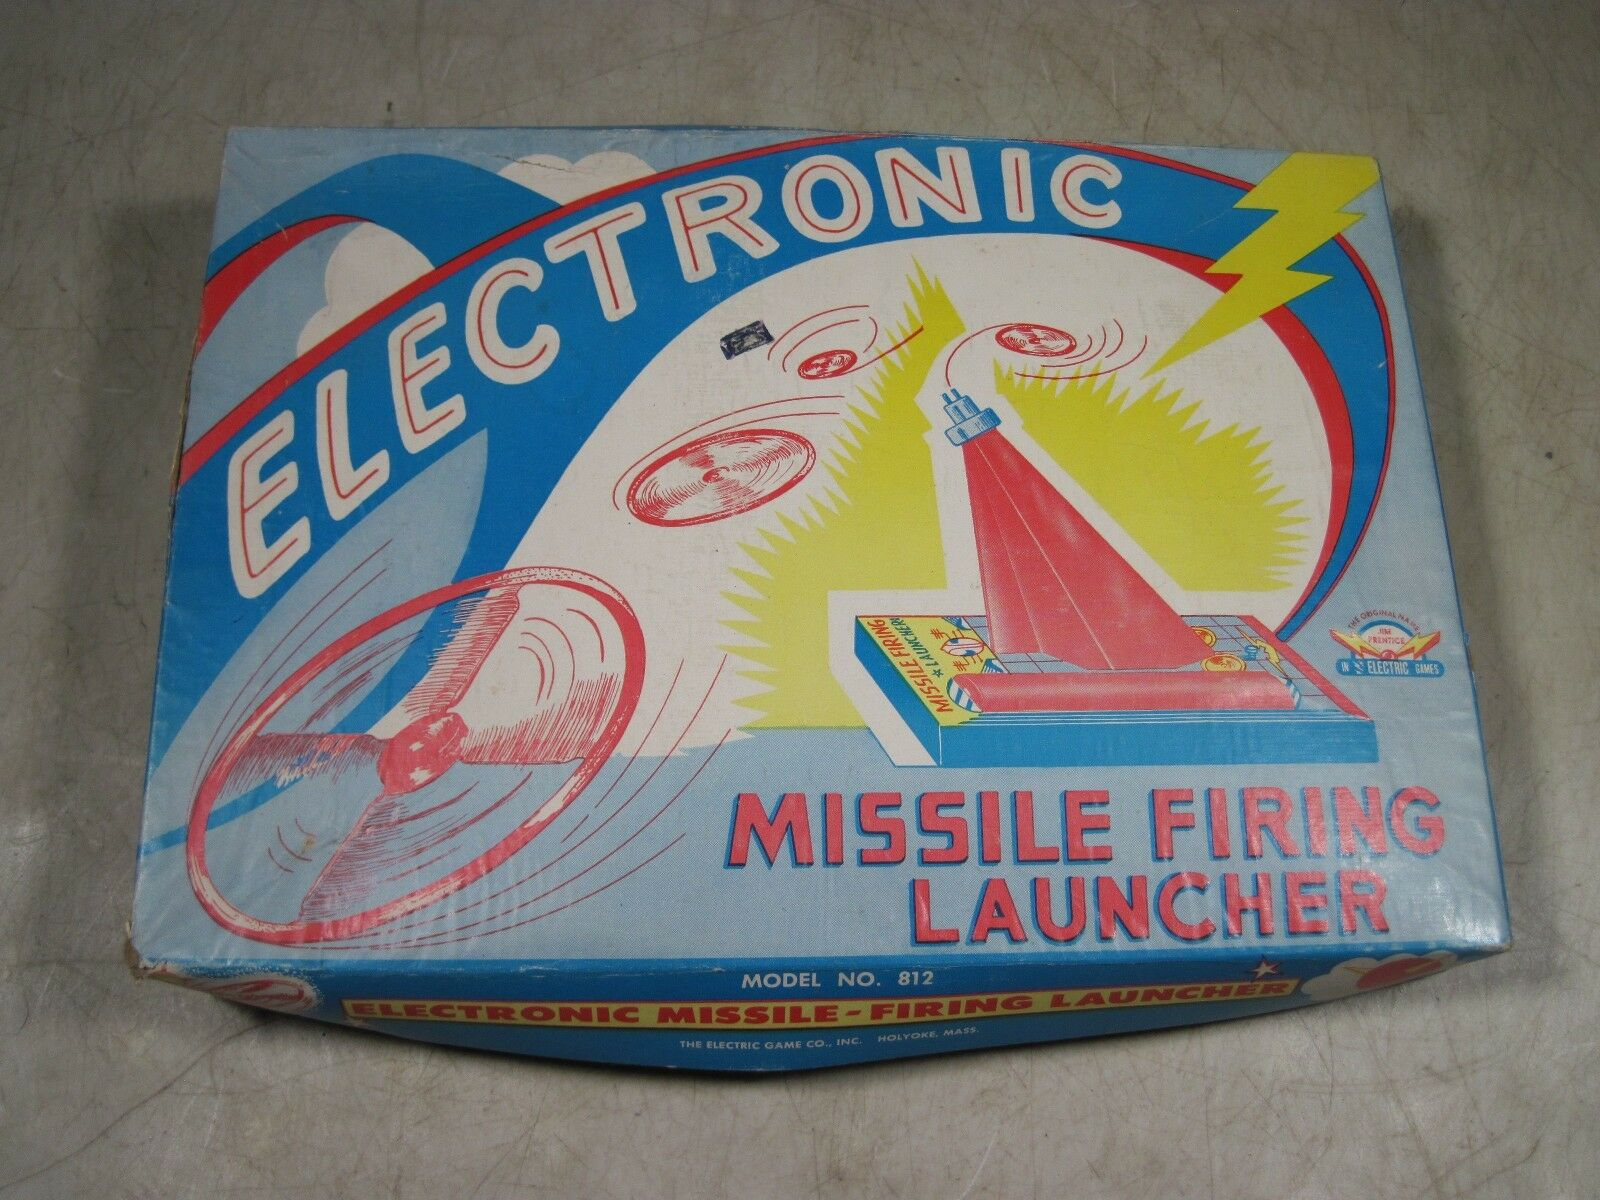 Vintage Jim Prentice Electric Game Co Electronic Missile Firing Launcher Toy USA